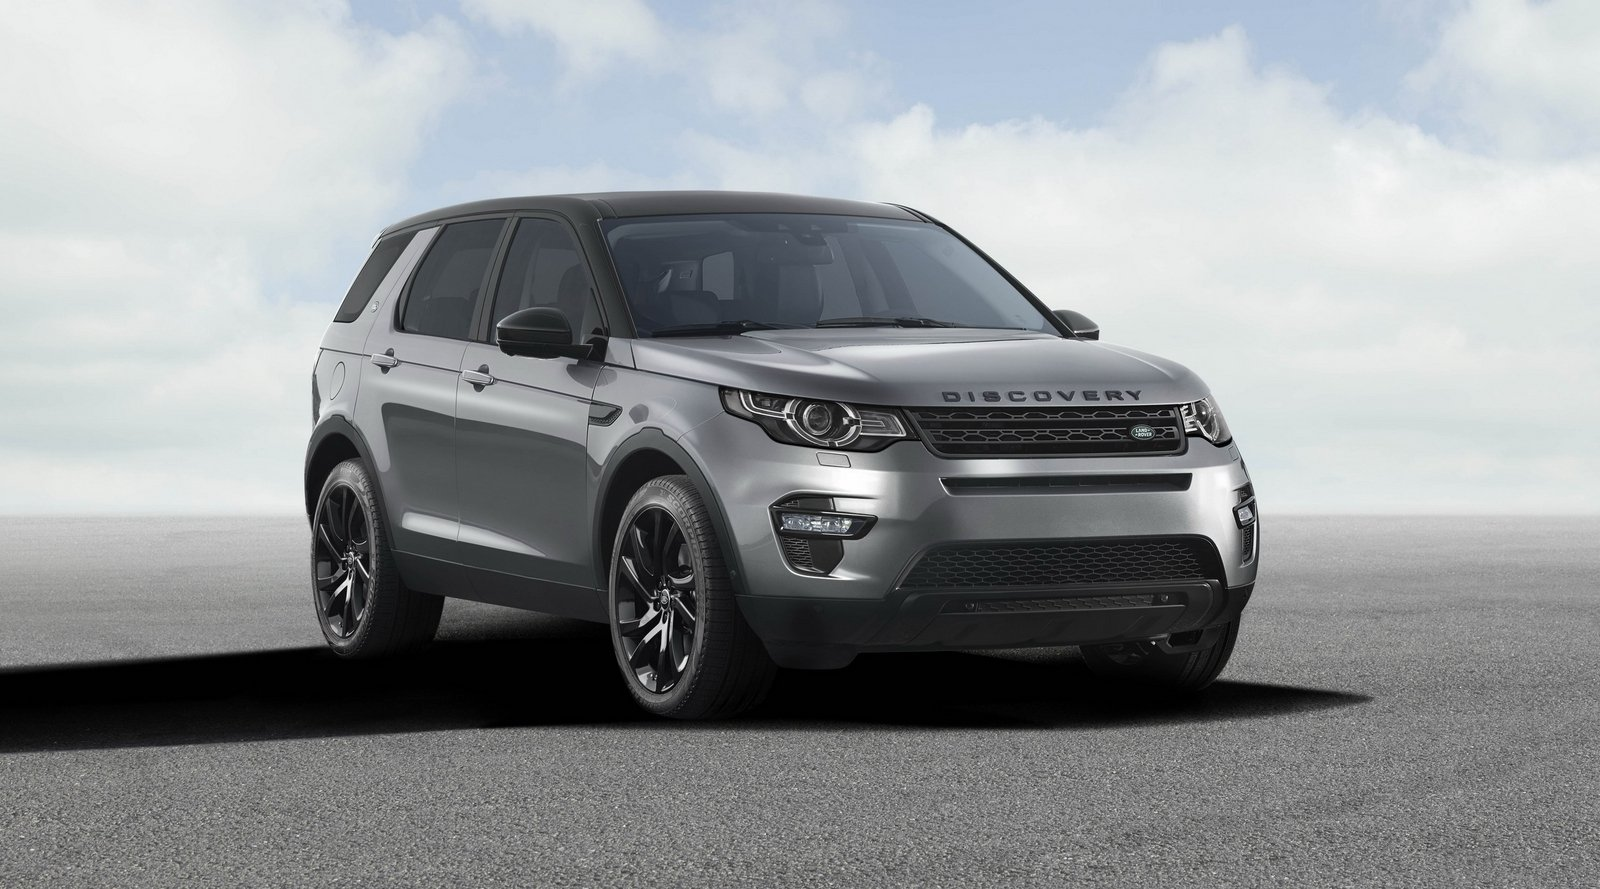 2016 Land Rover Discovery Sport Review - Top Speed